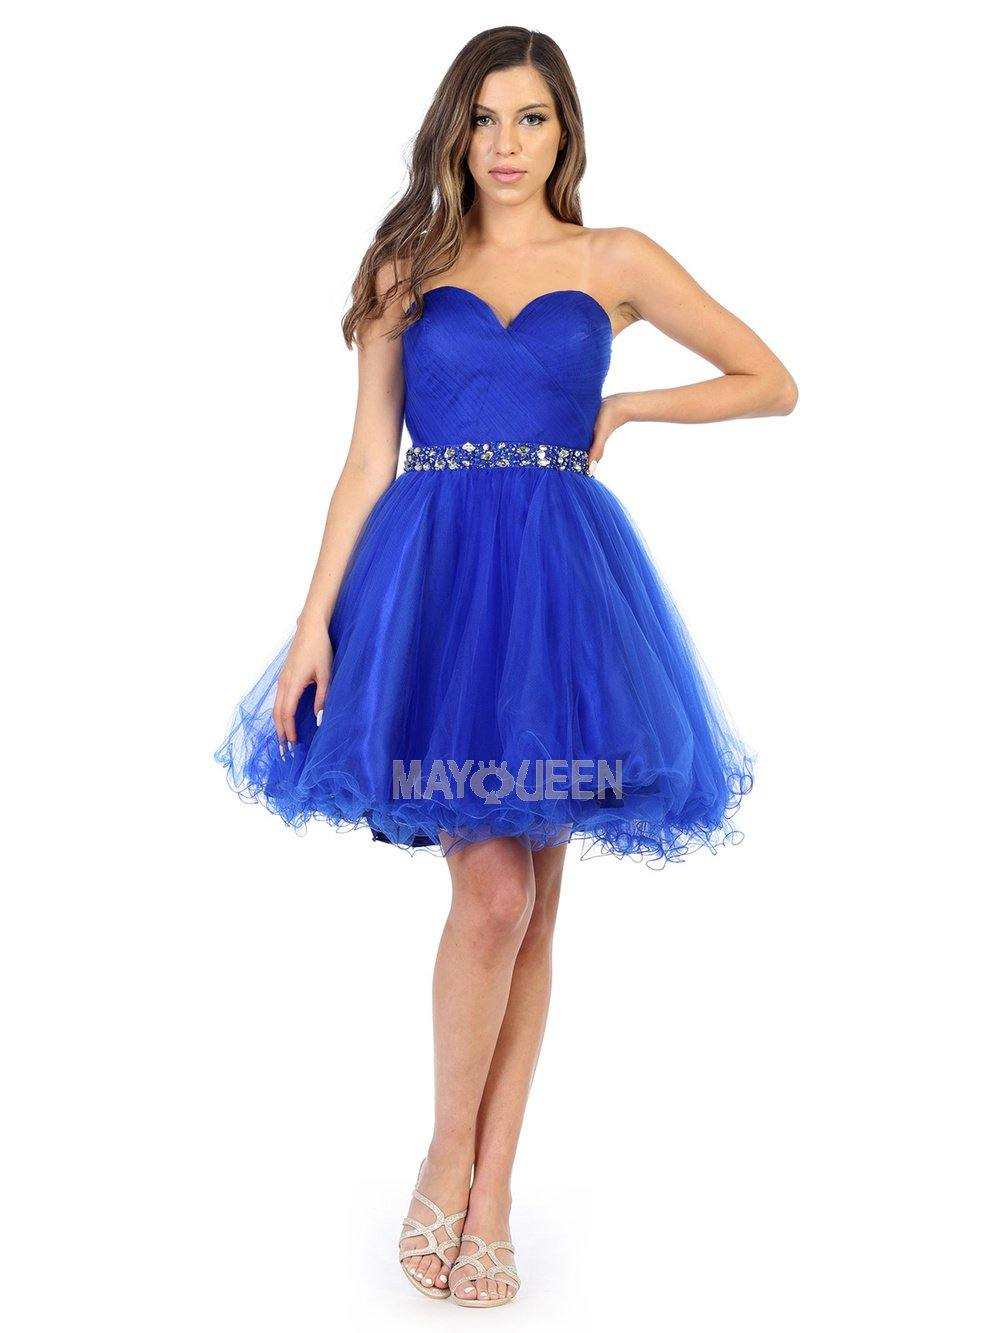 Strapless Short Dress Homecoming - The Dress Outlet Royal Blue